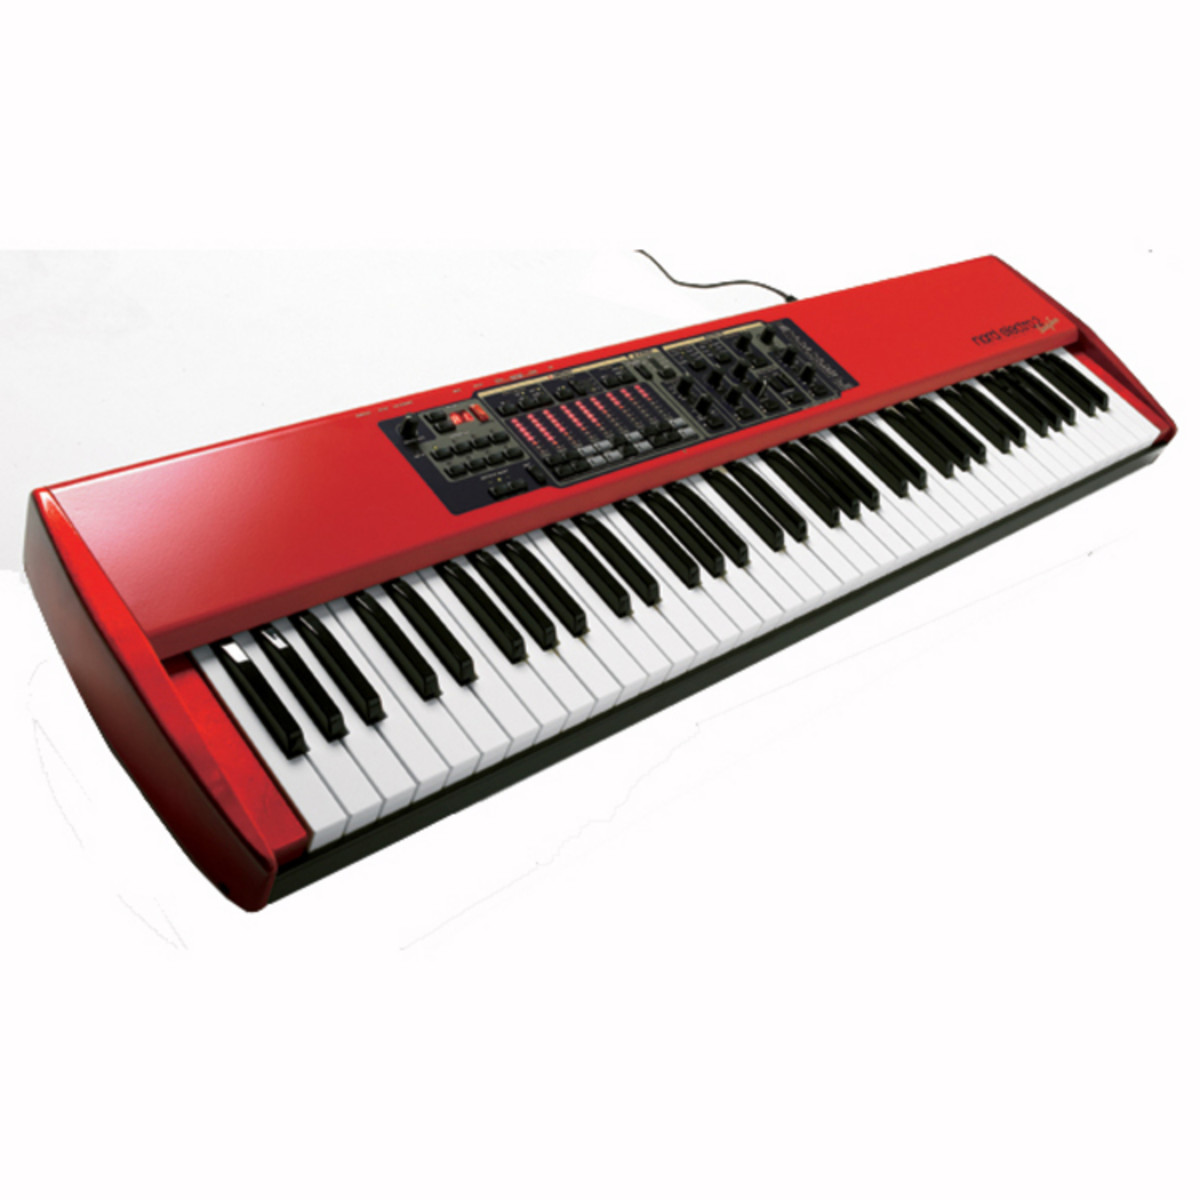 disc nord electro 2 73 electric piano at. Black Bedroom Furniture Sets. Home Design Ideas